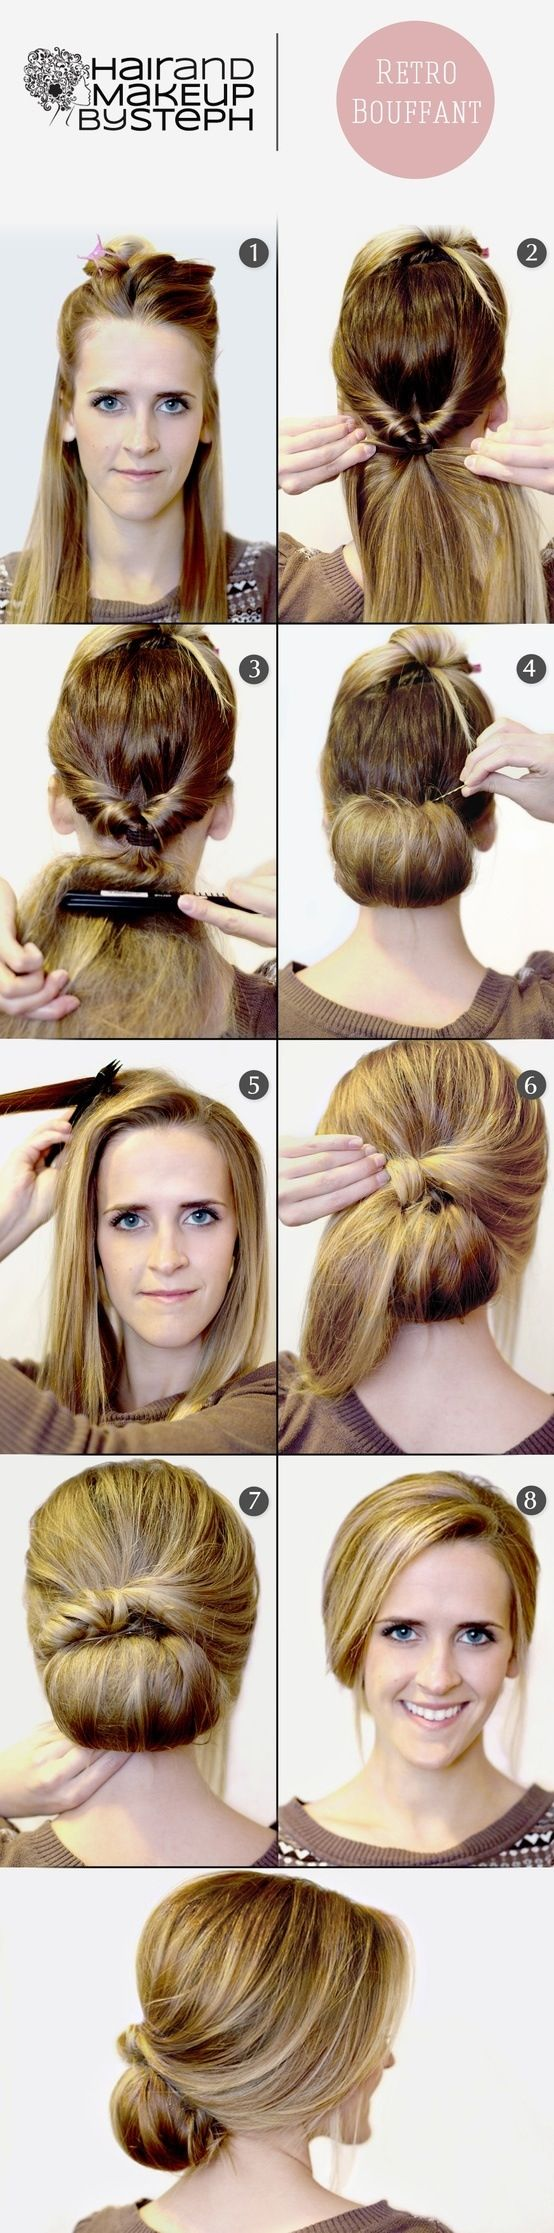 Cool hairstyle style pour femme pinterest easy updo updo and